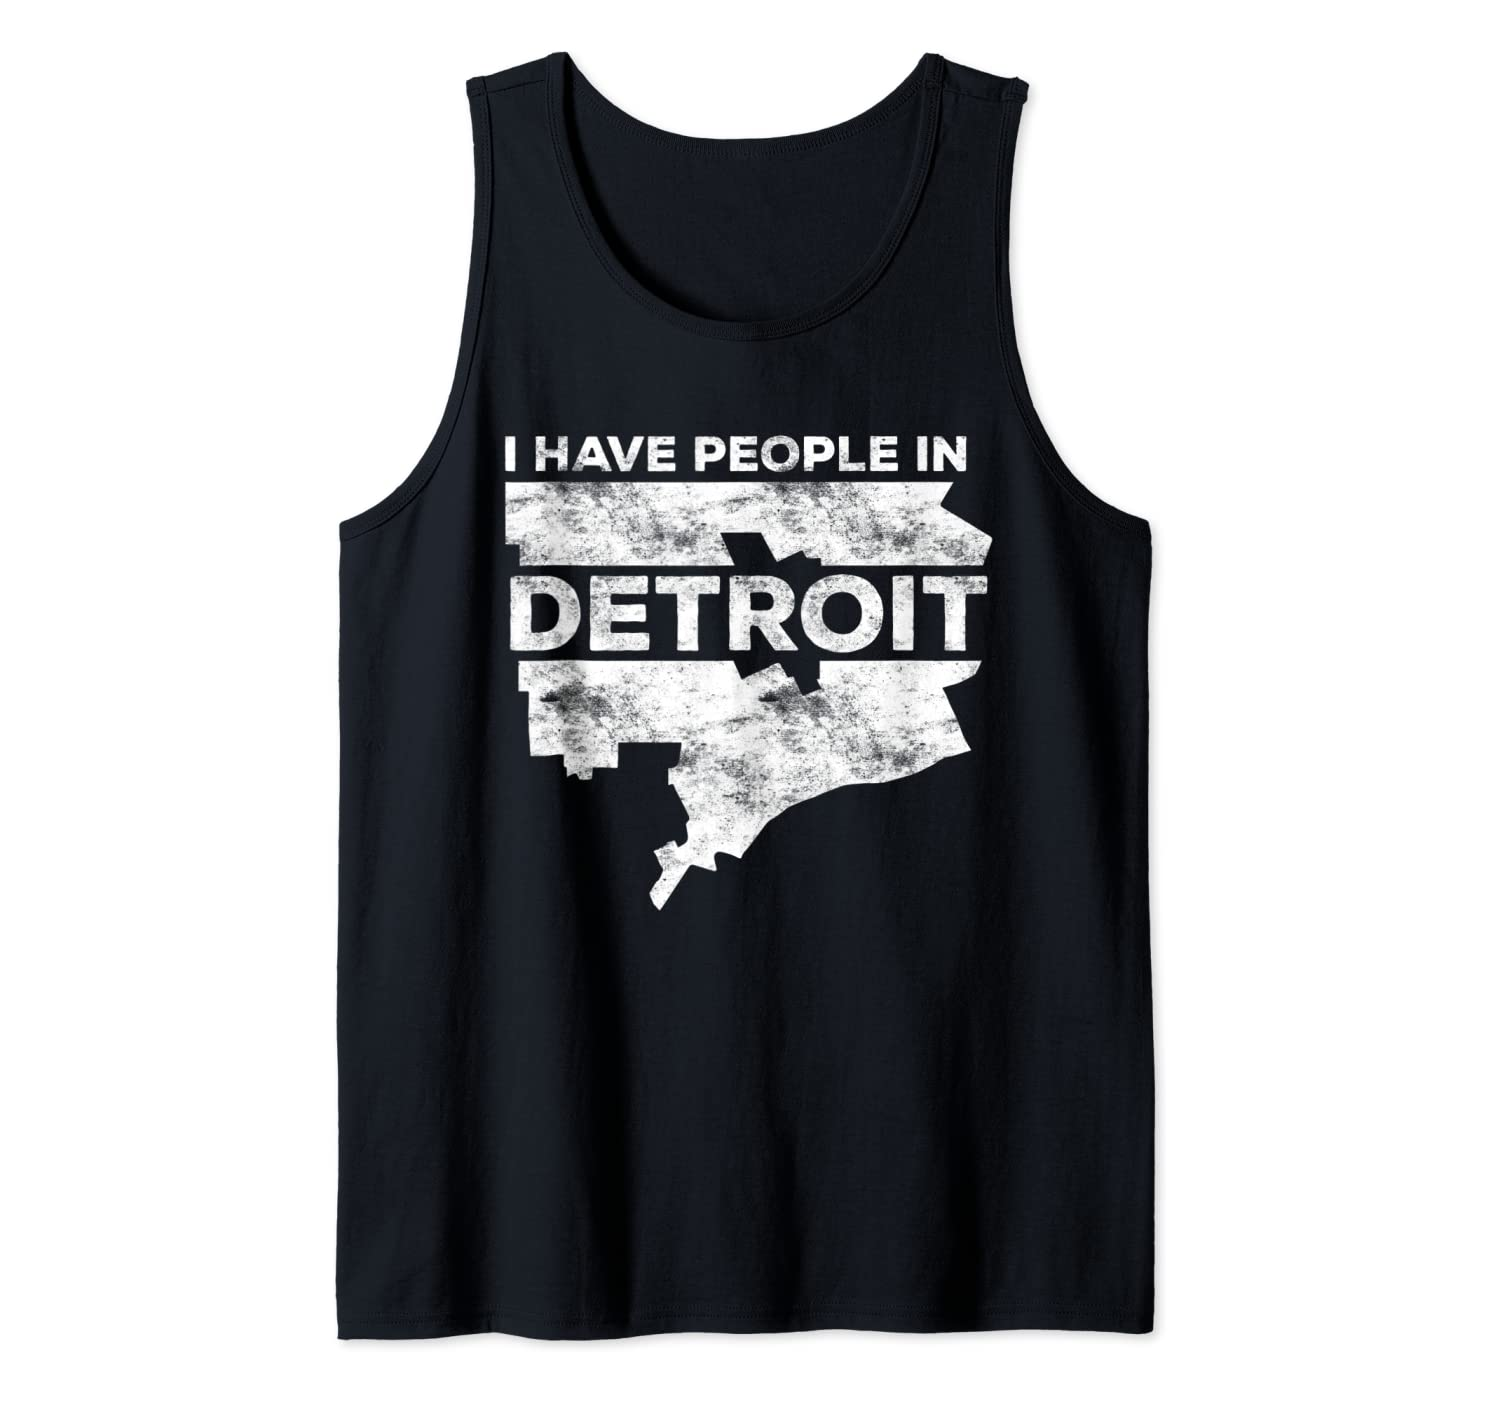 I Have People In Detroit T-Shirt Michigan Gift Shirt Tank Top